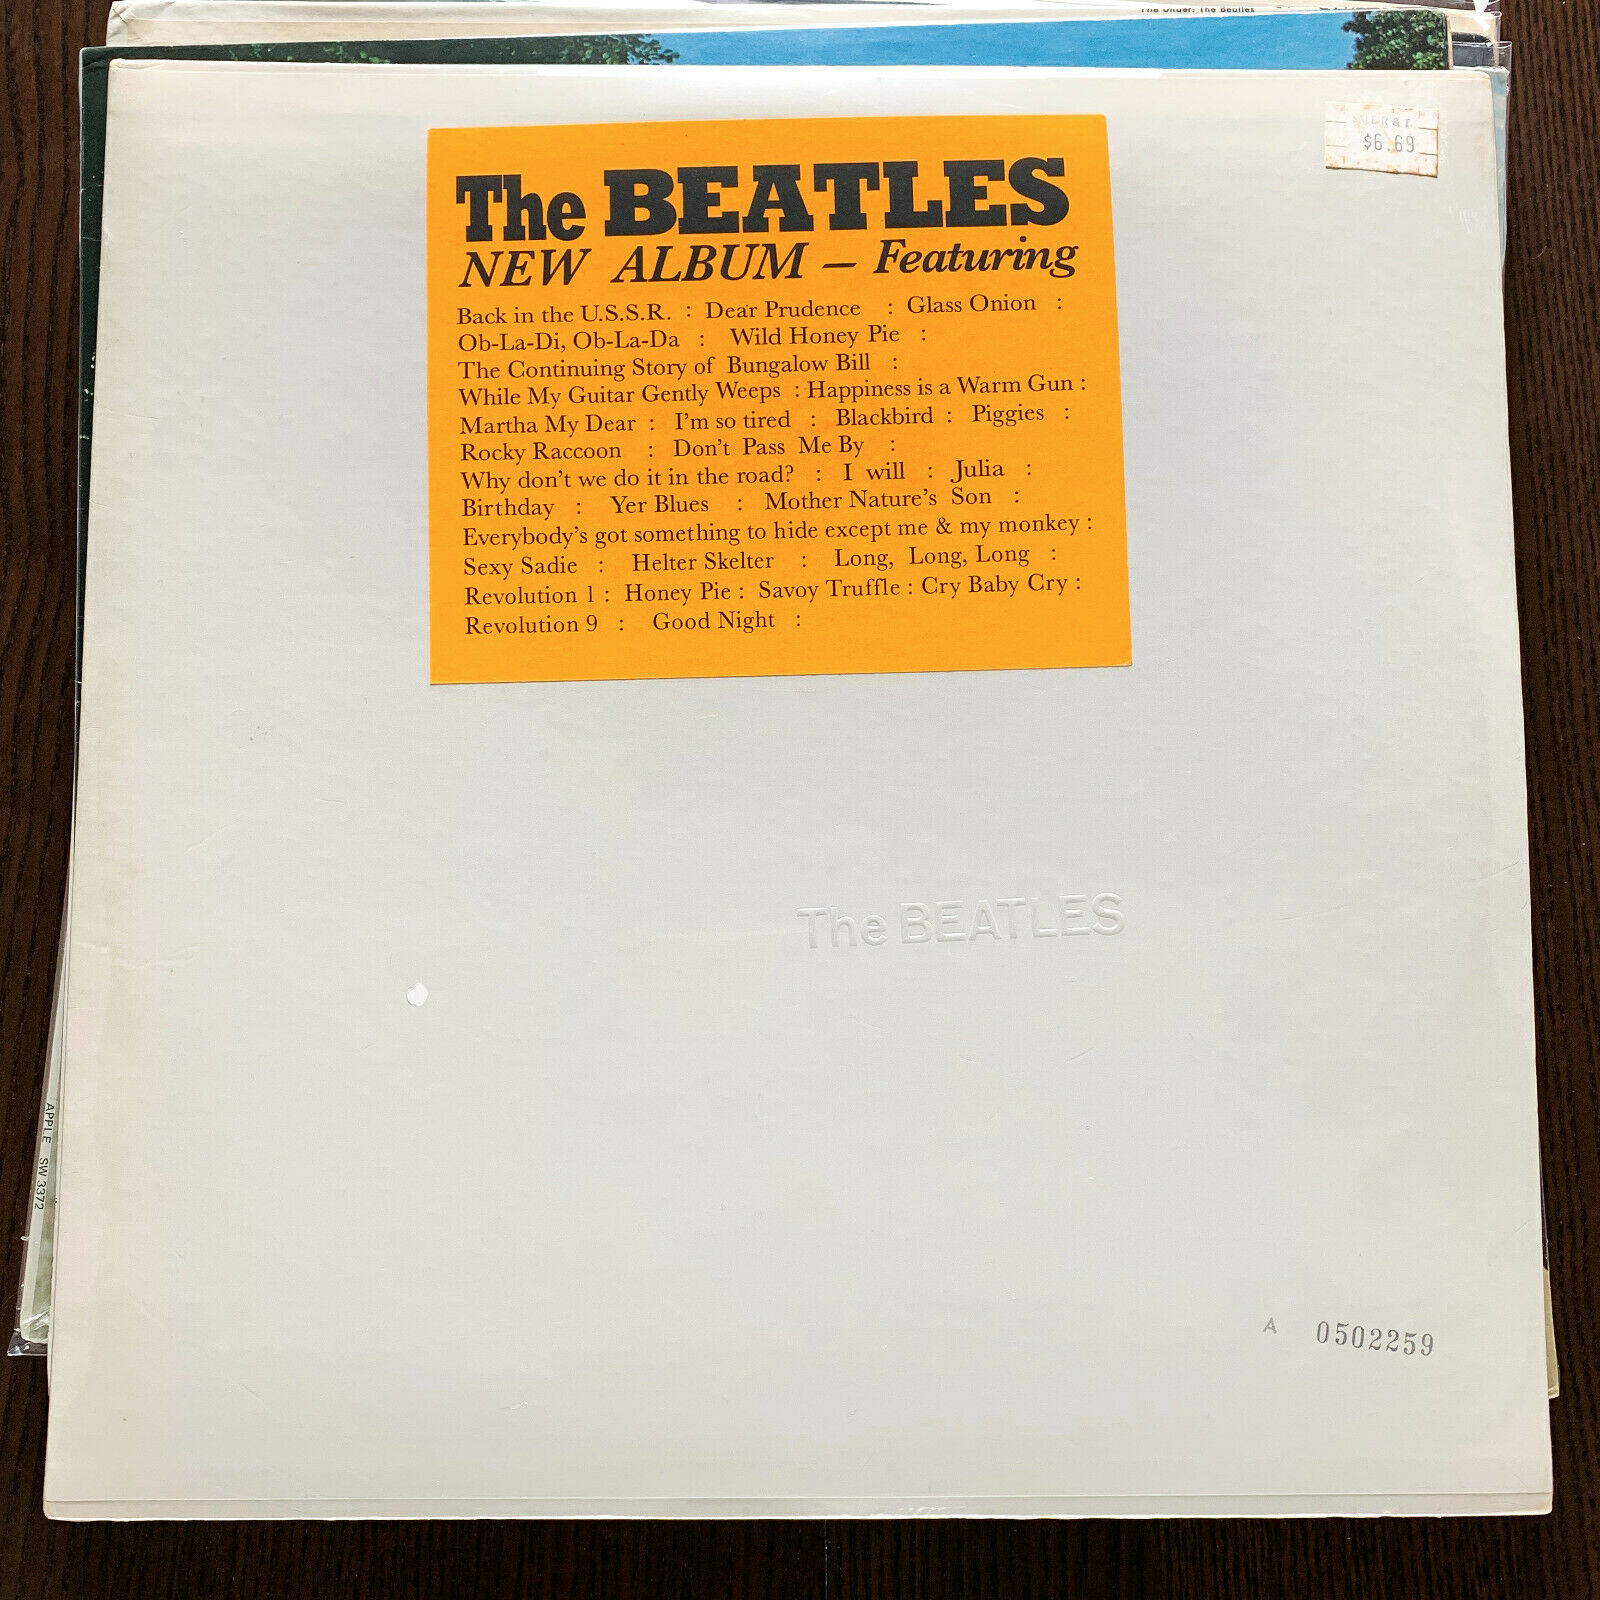 THE BEATLES THE BEATLES (WHITE ALBUM) US APPLE 1968 1ST PRESS 2LP STICKER SEALED